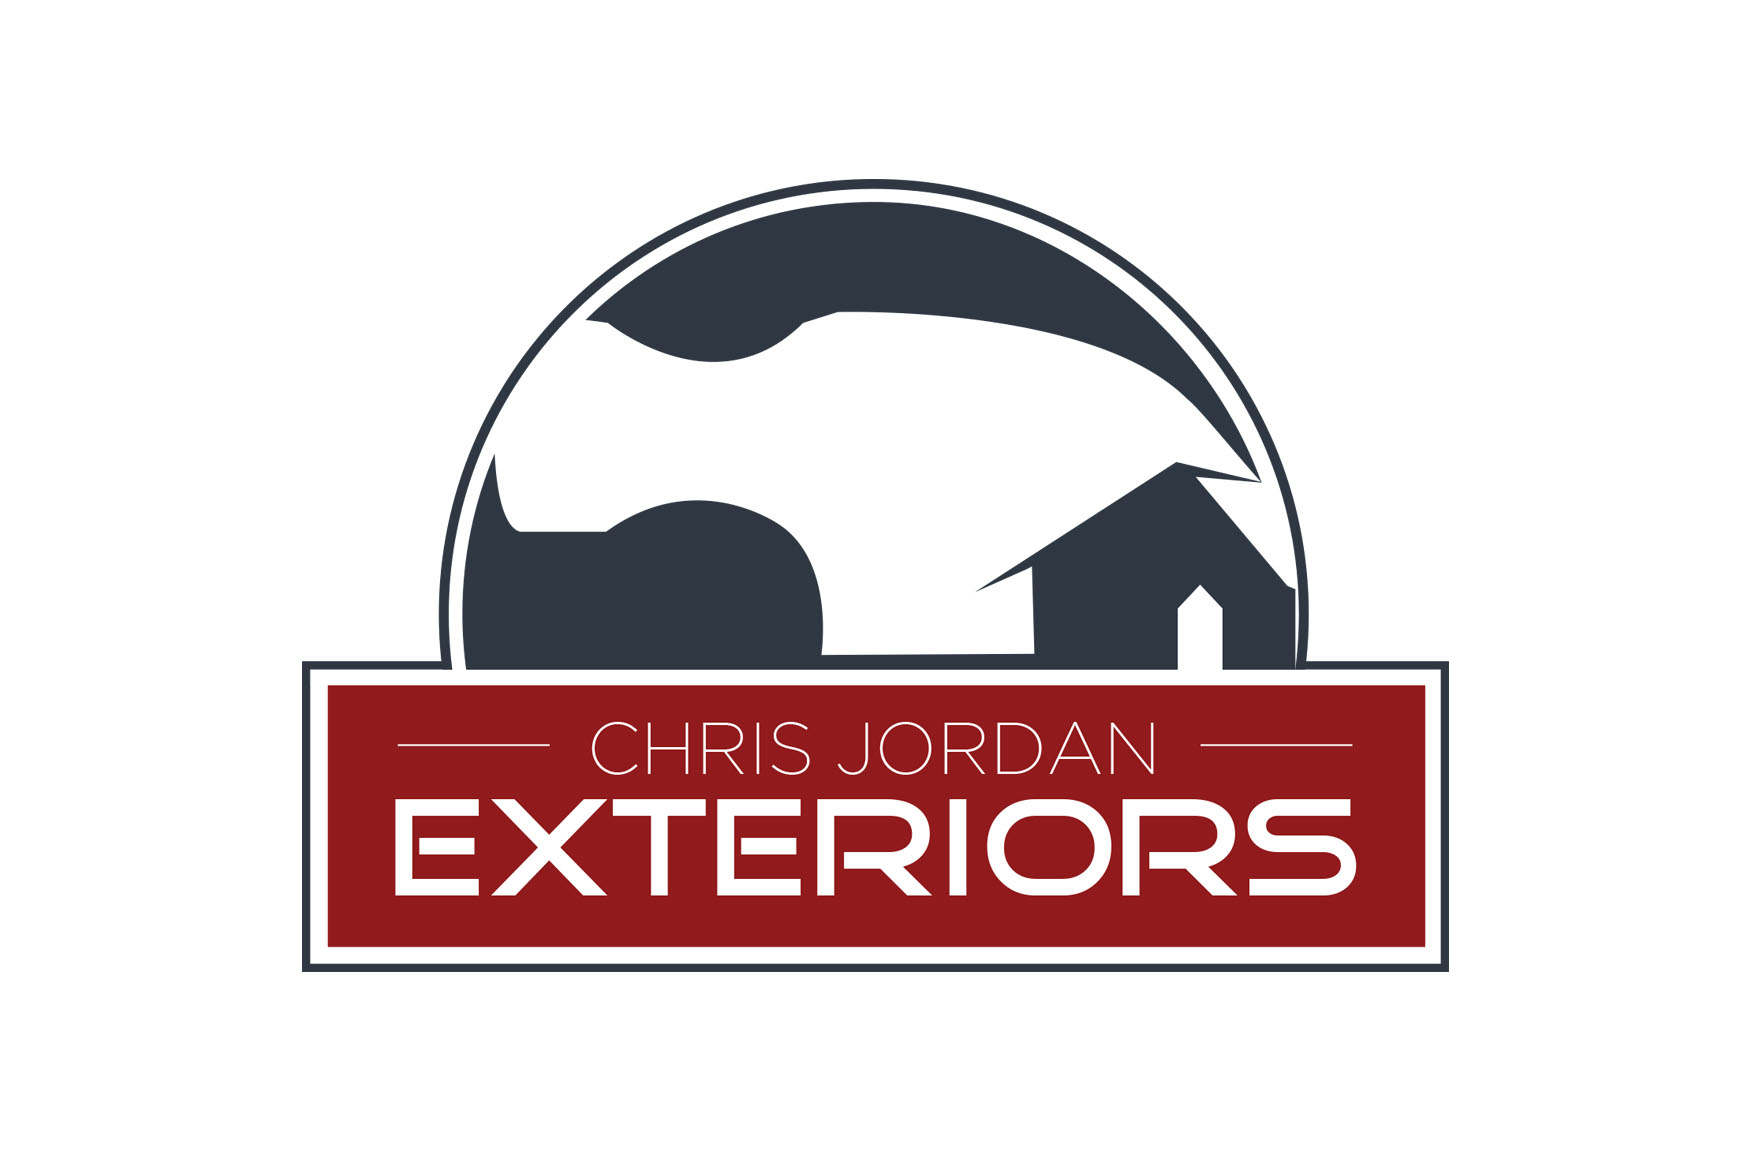 Logo Design | Branding | Chris Jordan Exteriors by Rockfish Media